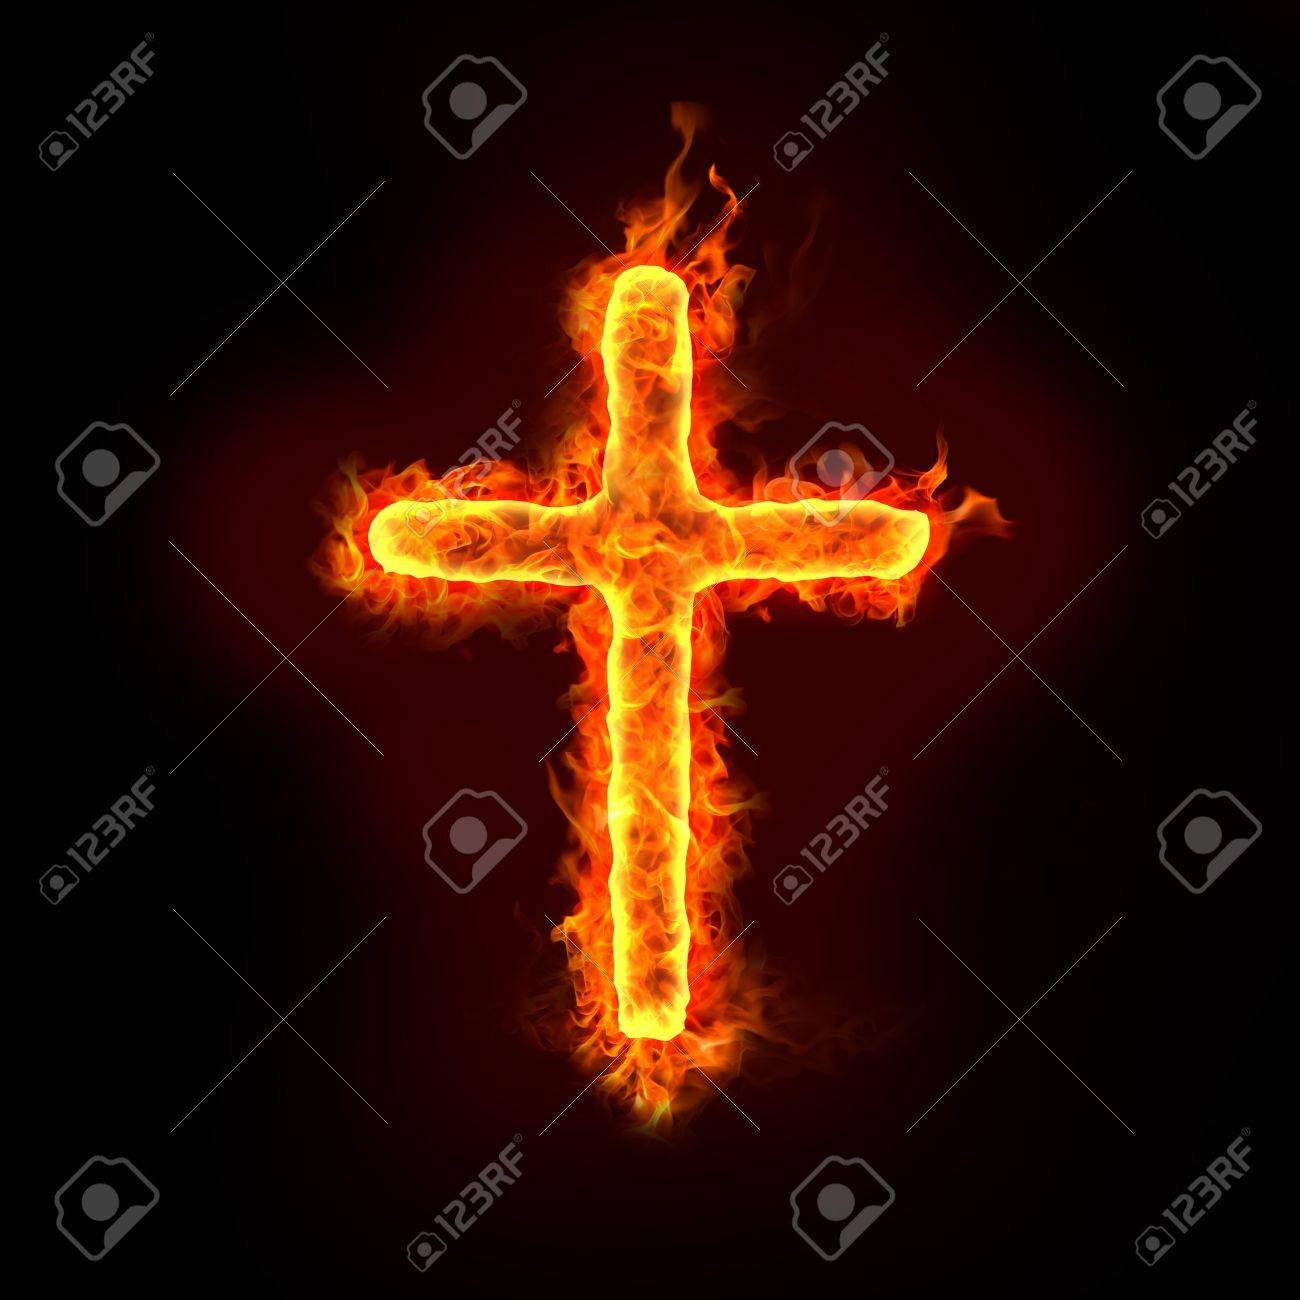 a burning christian cross sign with flames, for religion concepts Stock Photo - 11821109